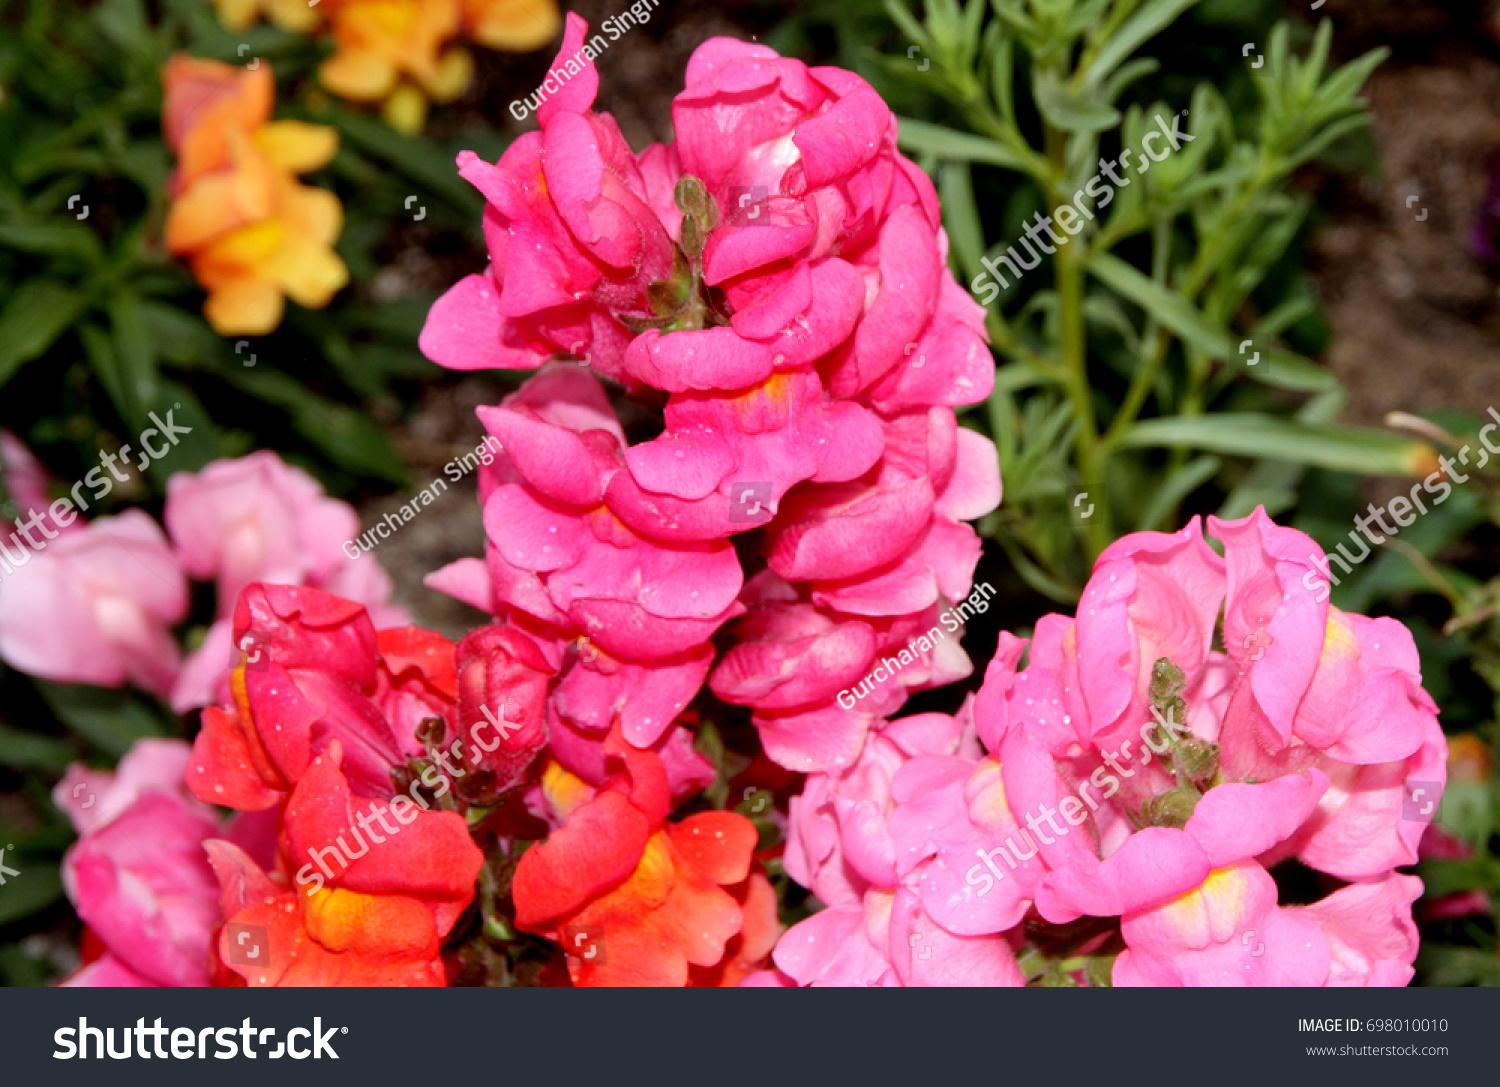 Antirrhinum Majus Pink Snapdragon Dog Flower Stock Photo Royalty